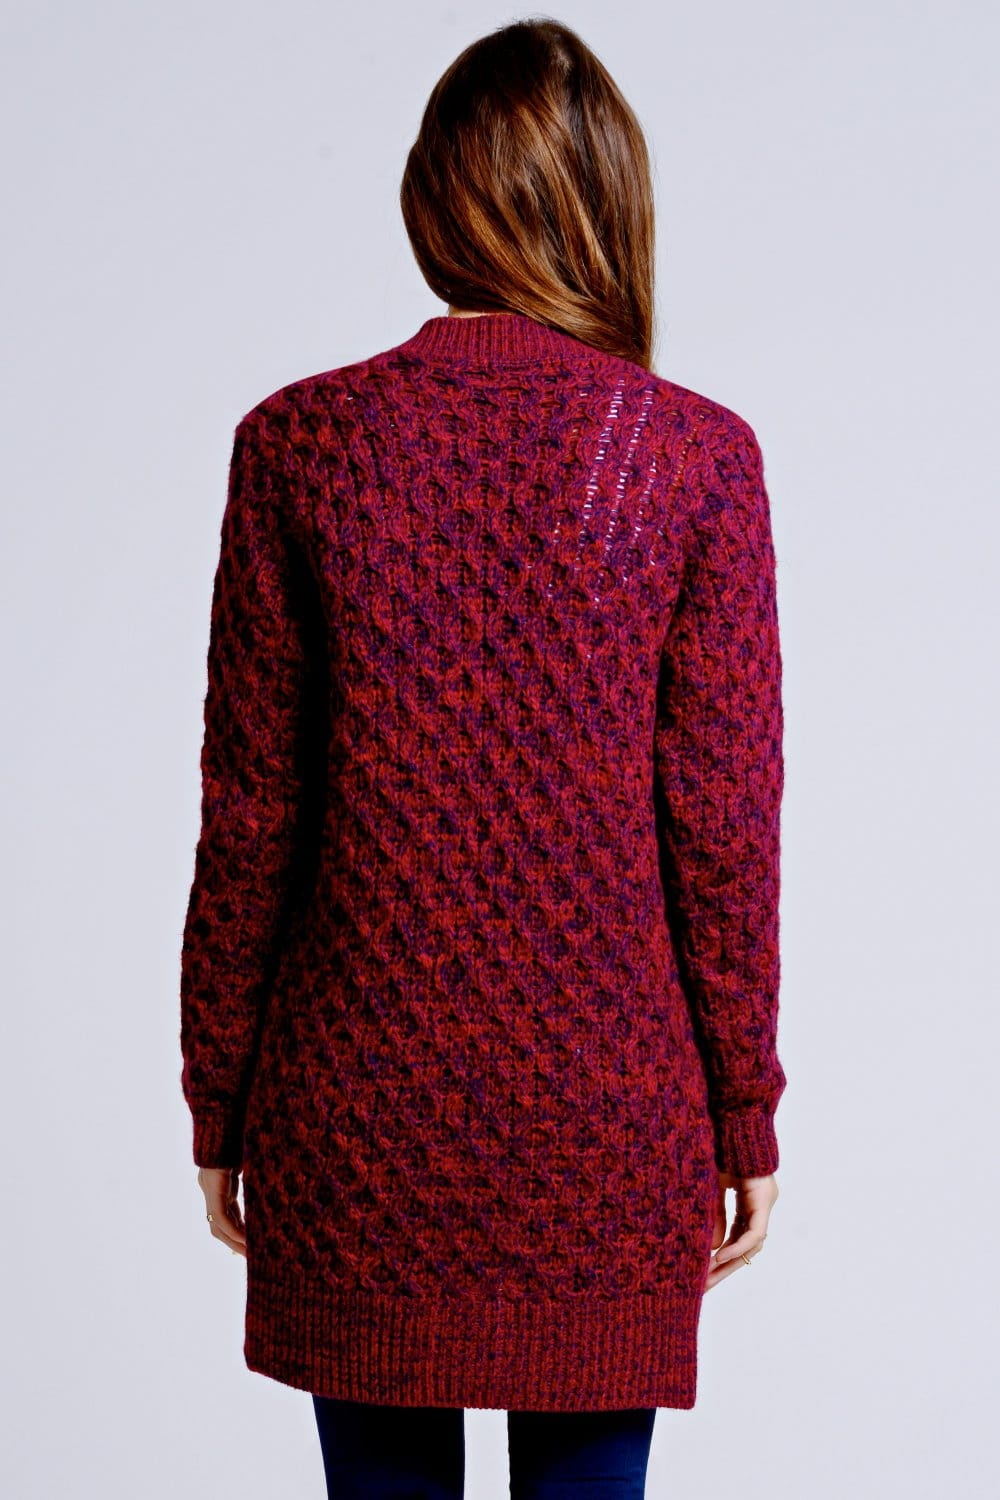 Soft, Knit, Boho and Handwoven Sweaters for Women. At Anthropologie, our assortment of sweaters for women range from elevated to casual, lightweight to cold-weather knits.